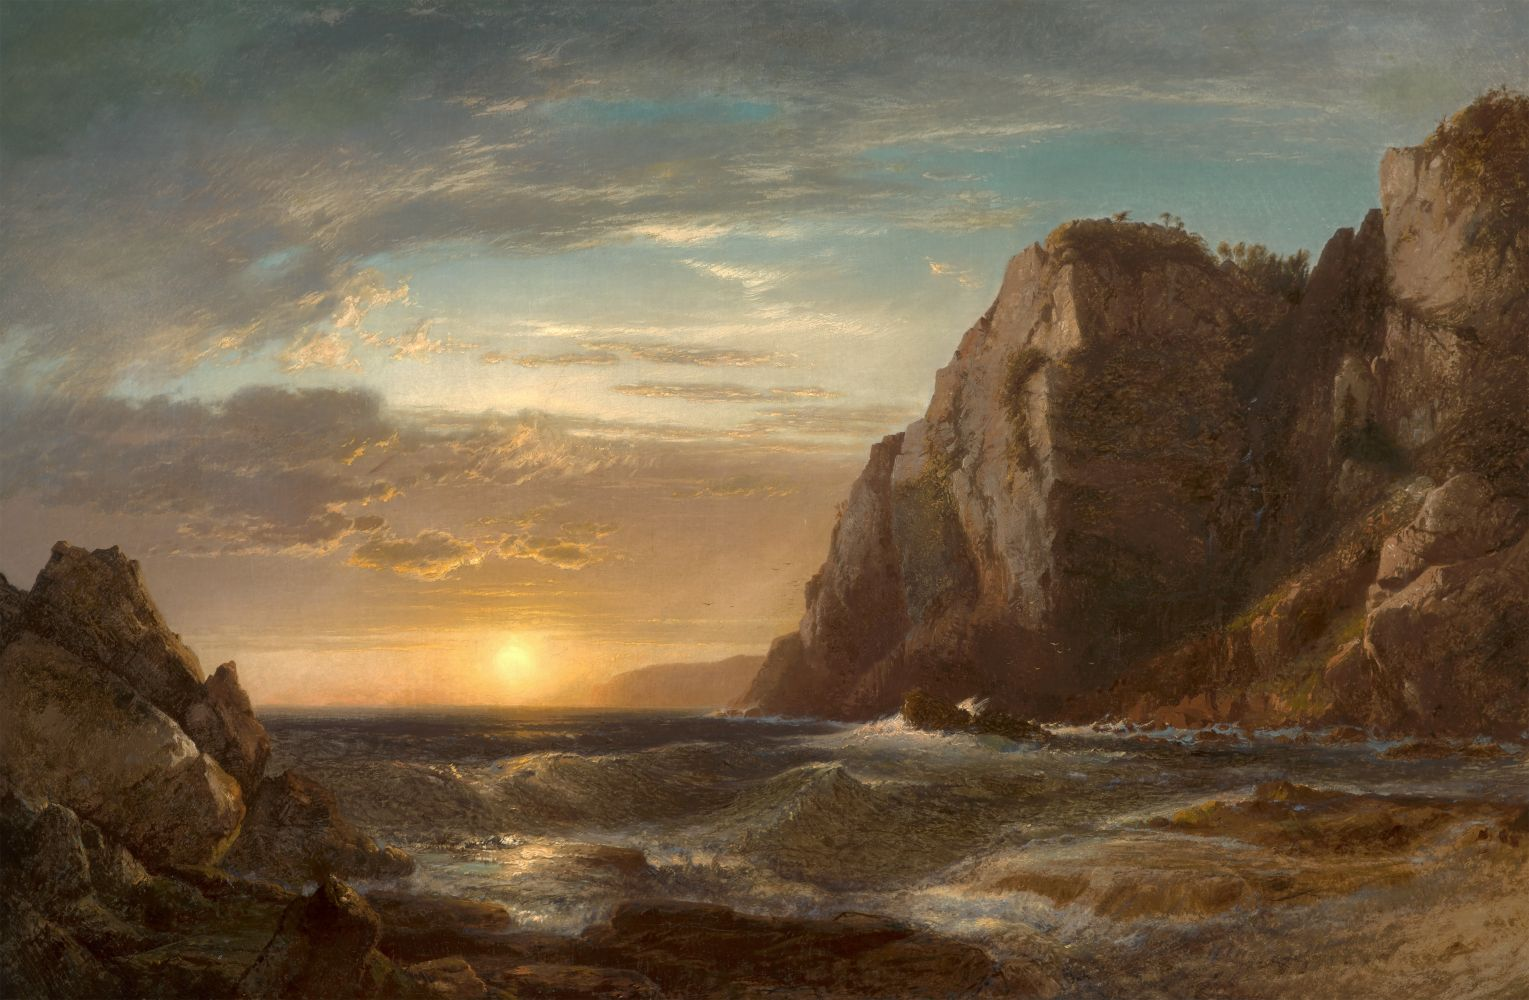 William Hart (1823–1894), Sunset on Grand Manan Island, New Brunswick, 1861, oil on canvas, 32 x 48 in., signed and dated lower left: Hart 1861